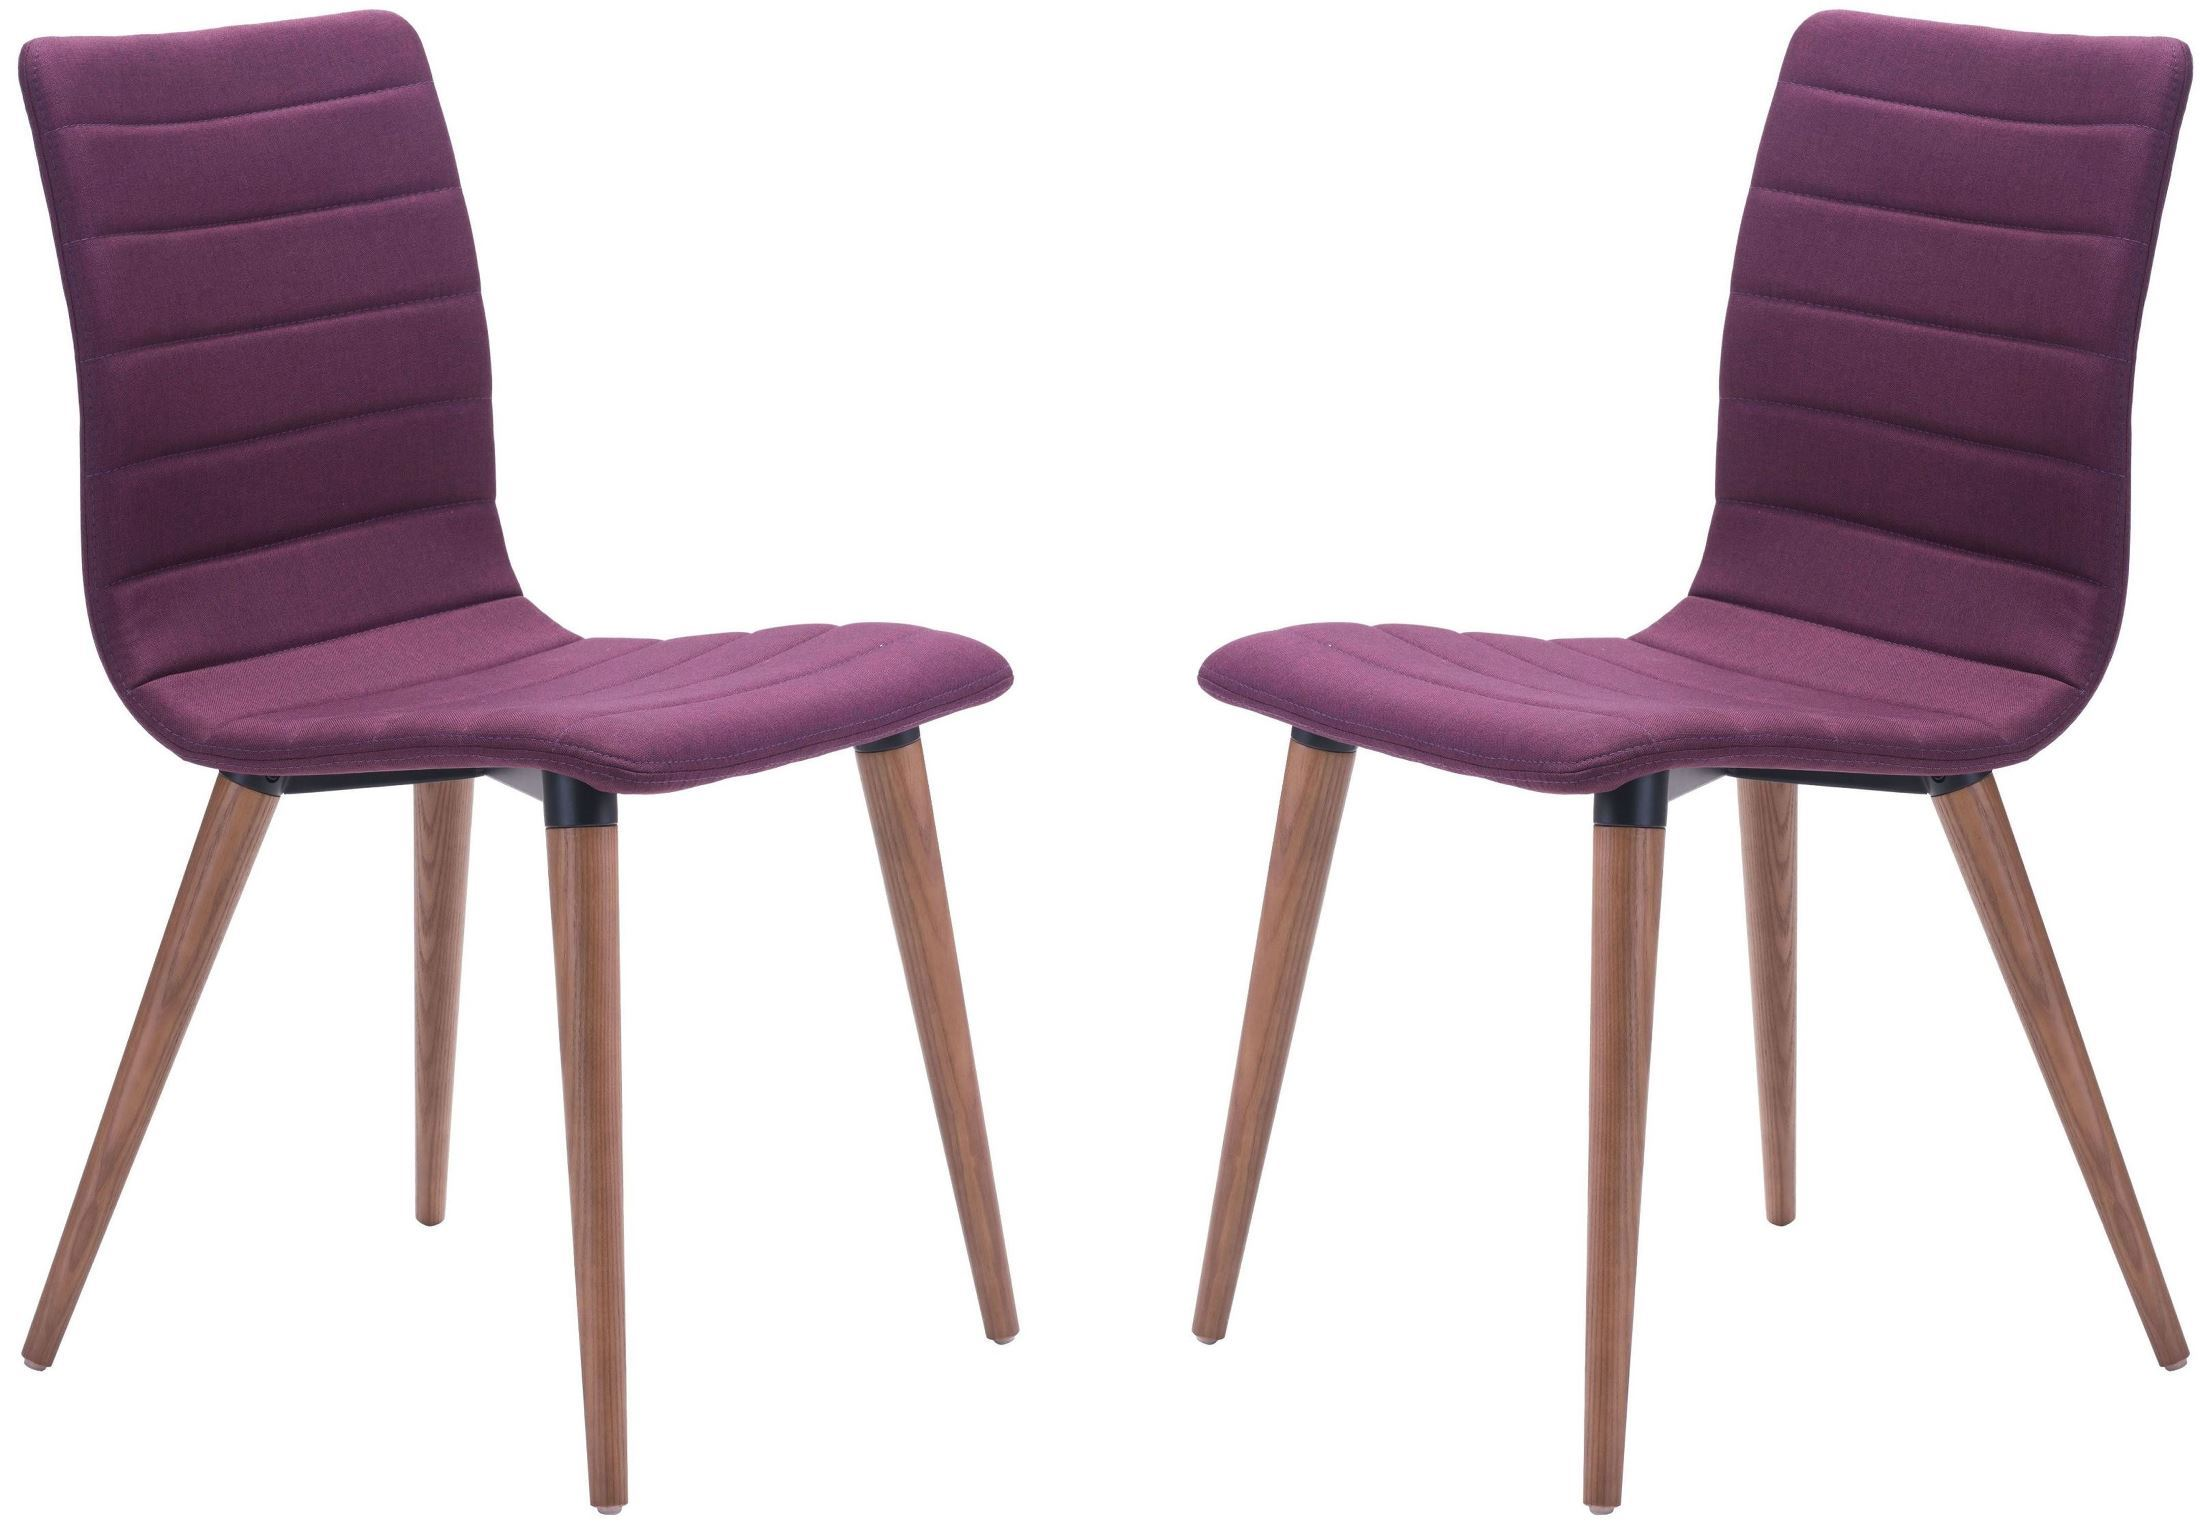 Purple Dining Room Chairs Zuo Modern Jericho Purple Dining Chair Set Of 2 Jericho